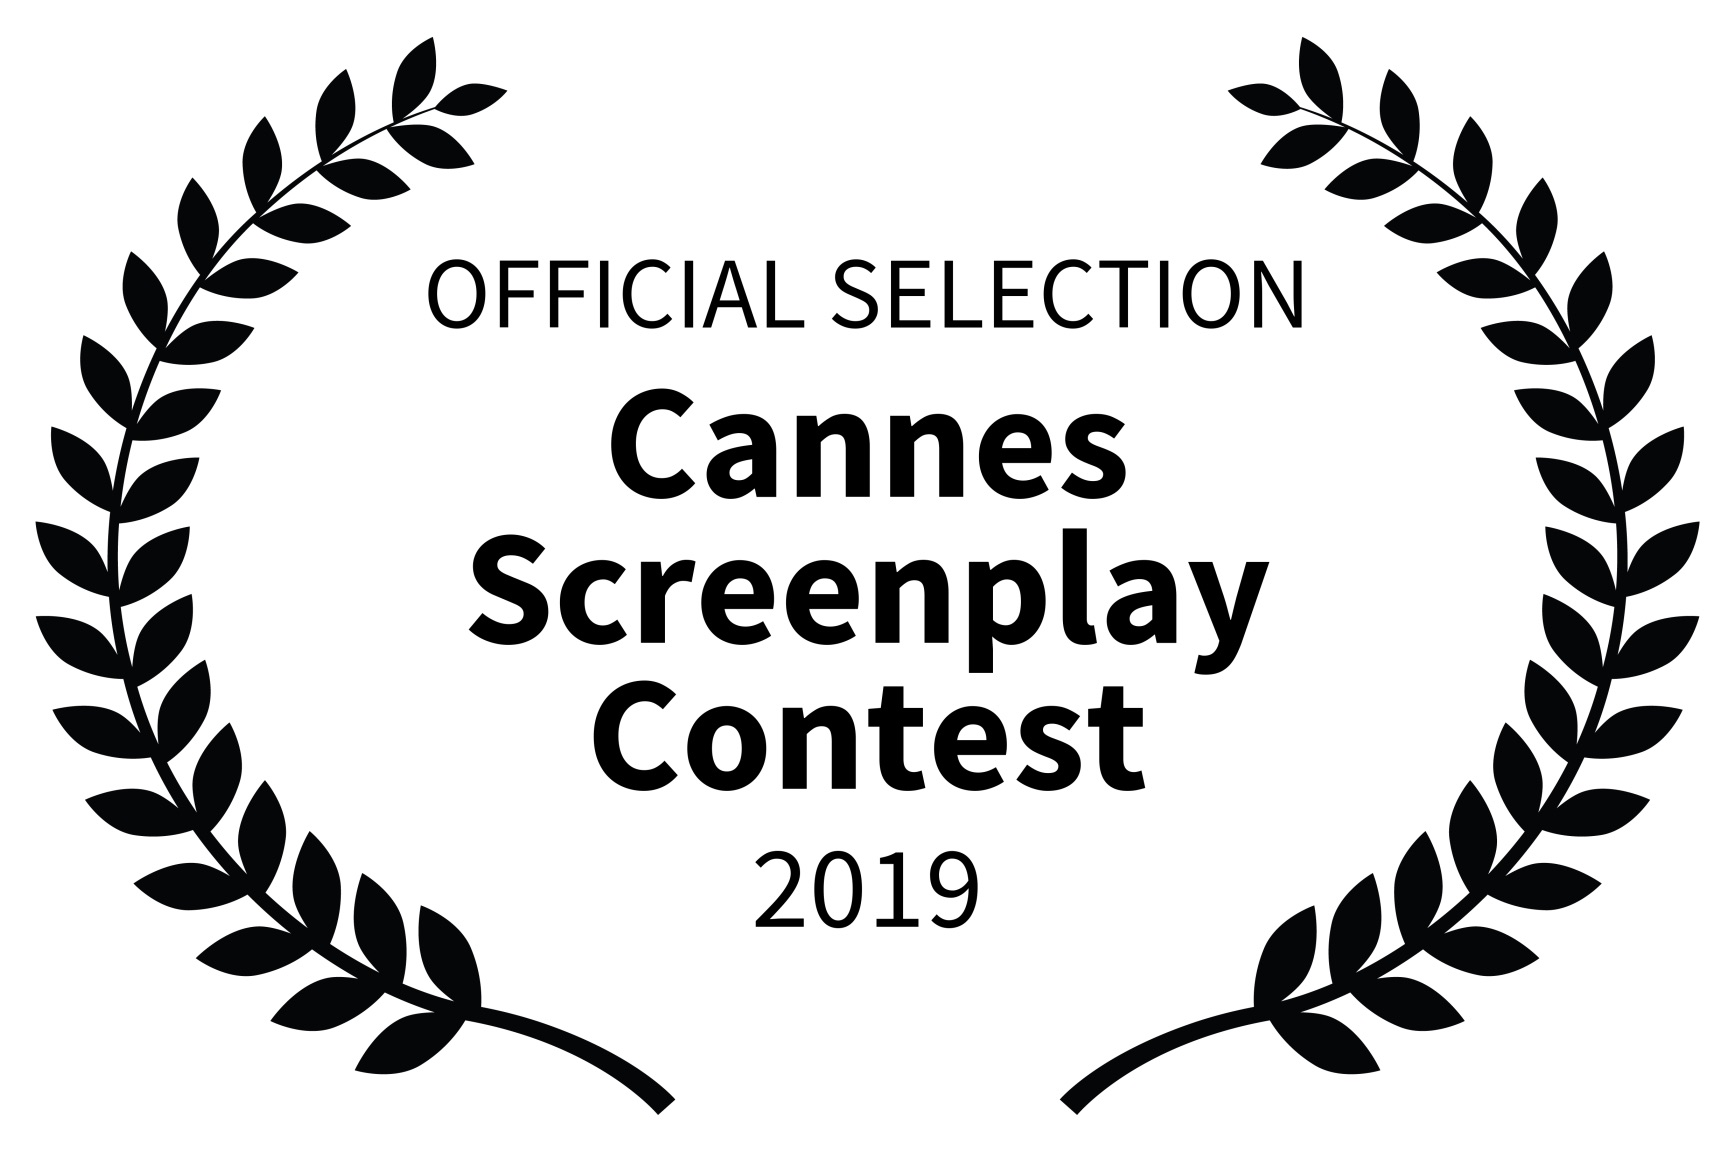 OFFICIAL SELECTION - Cannes Screenplay Contest - 2019